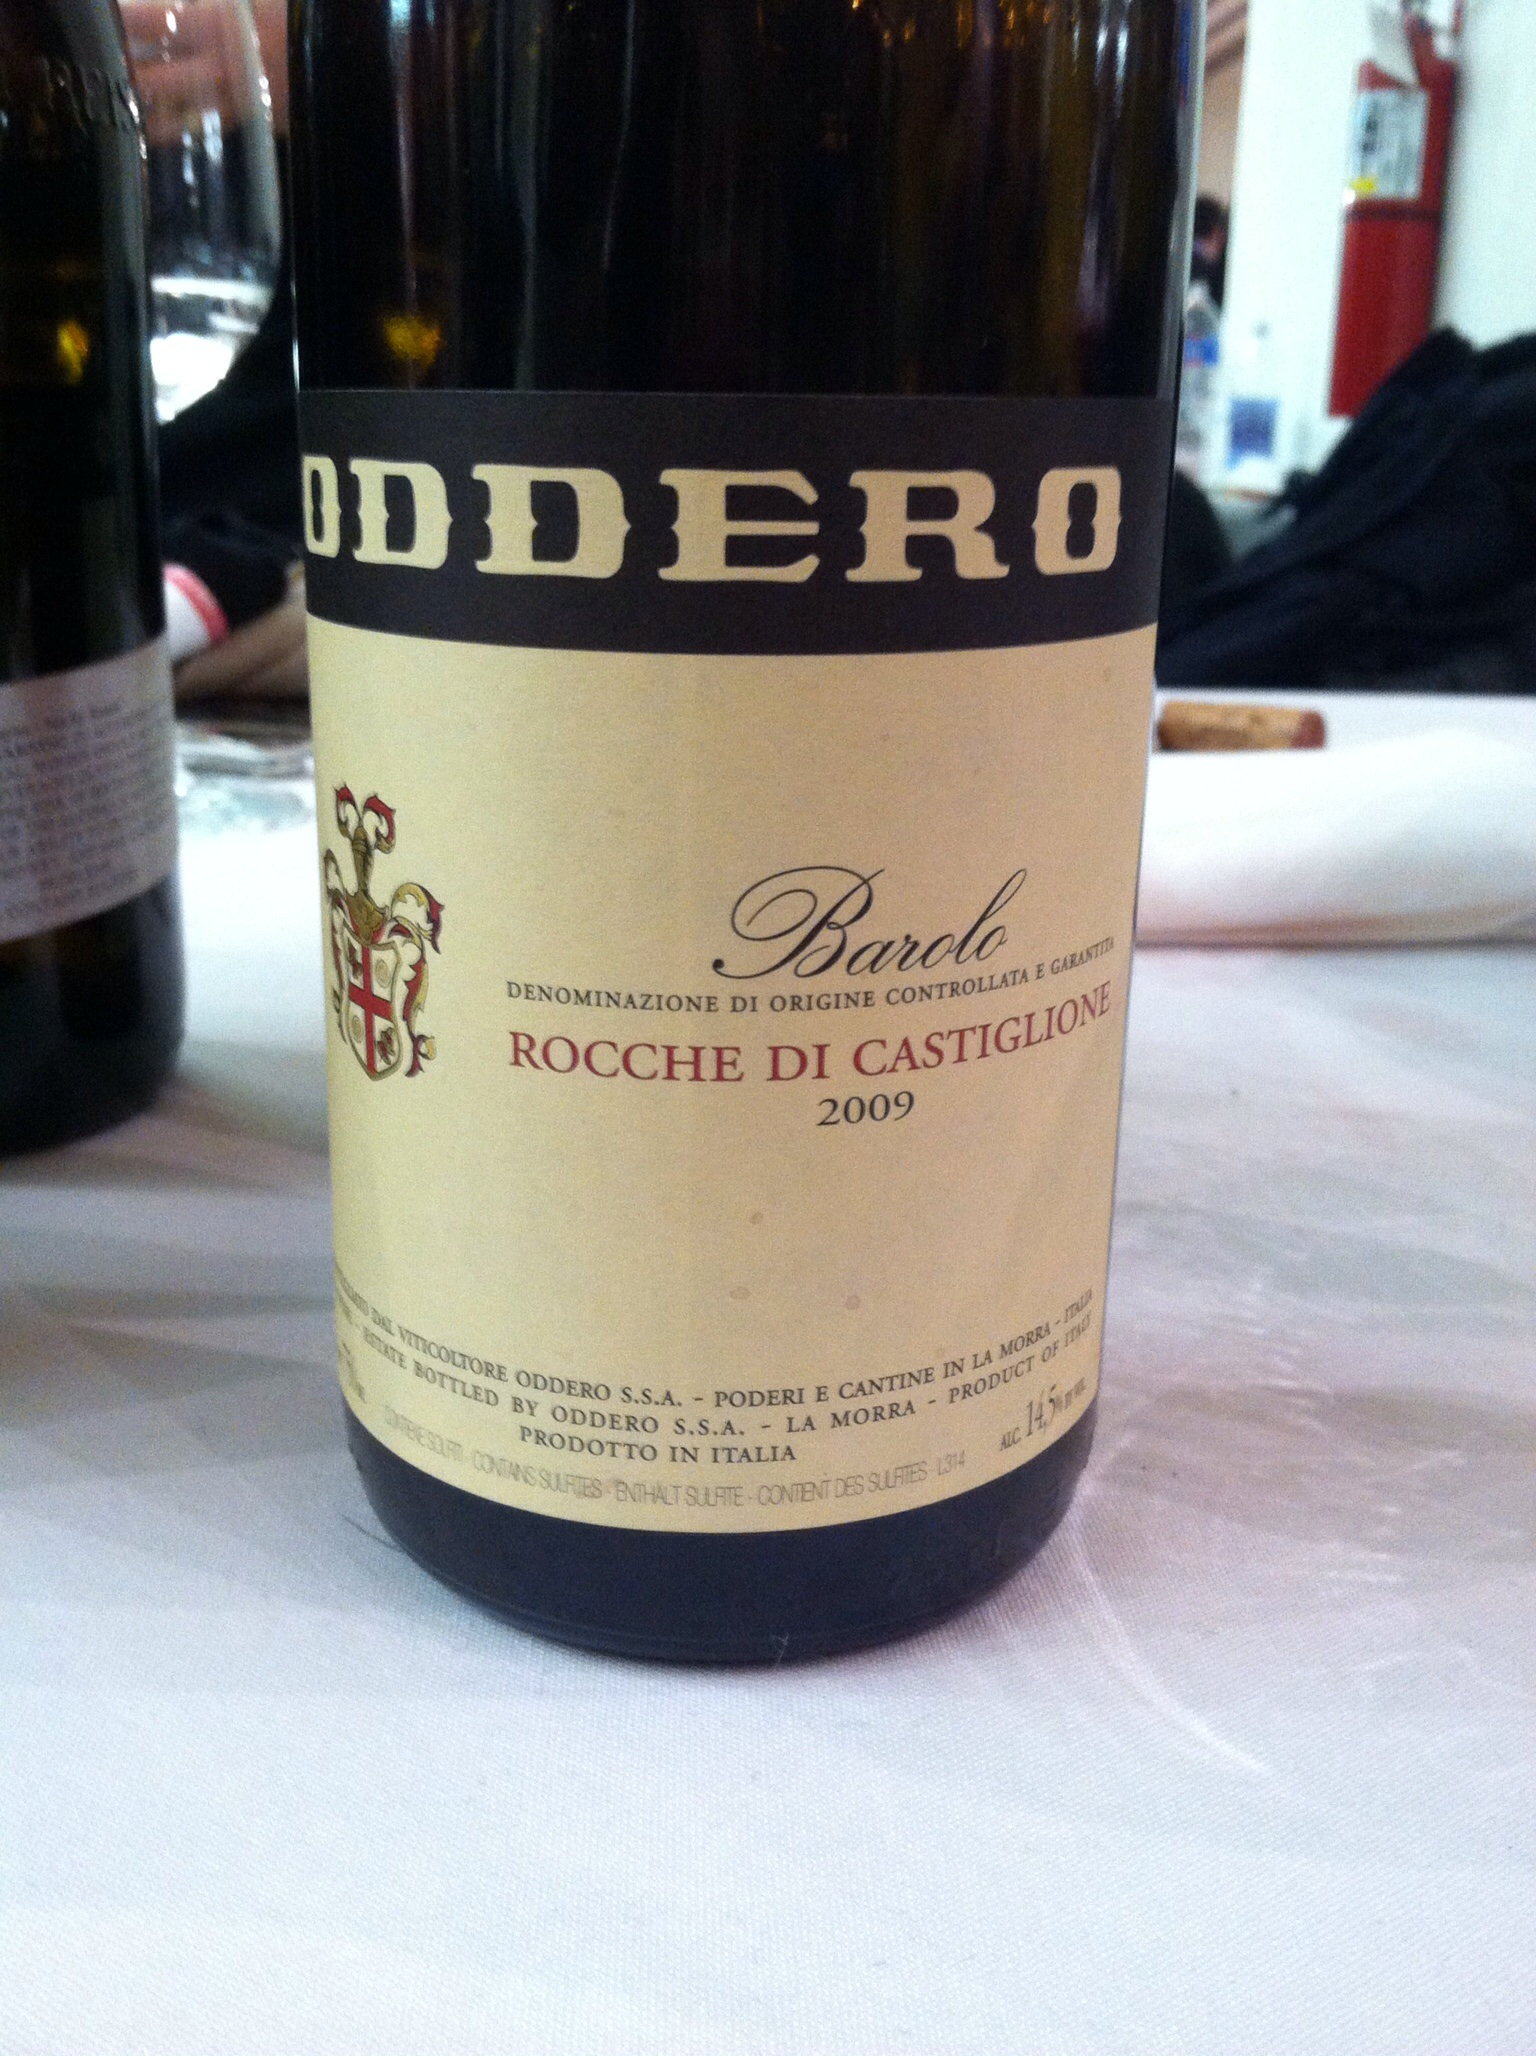 The newest Barolo release from a good Piedmont producer